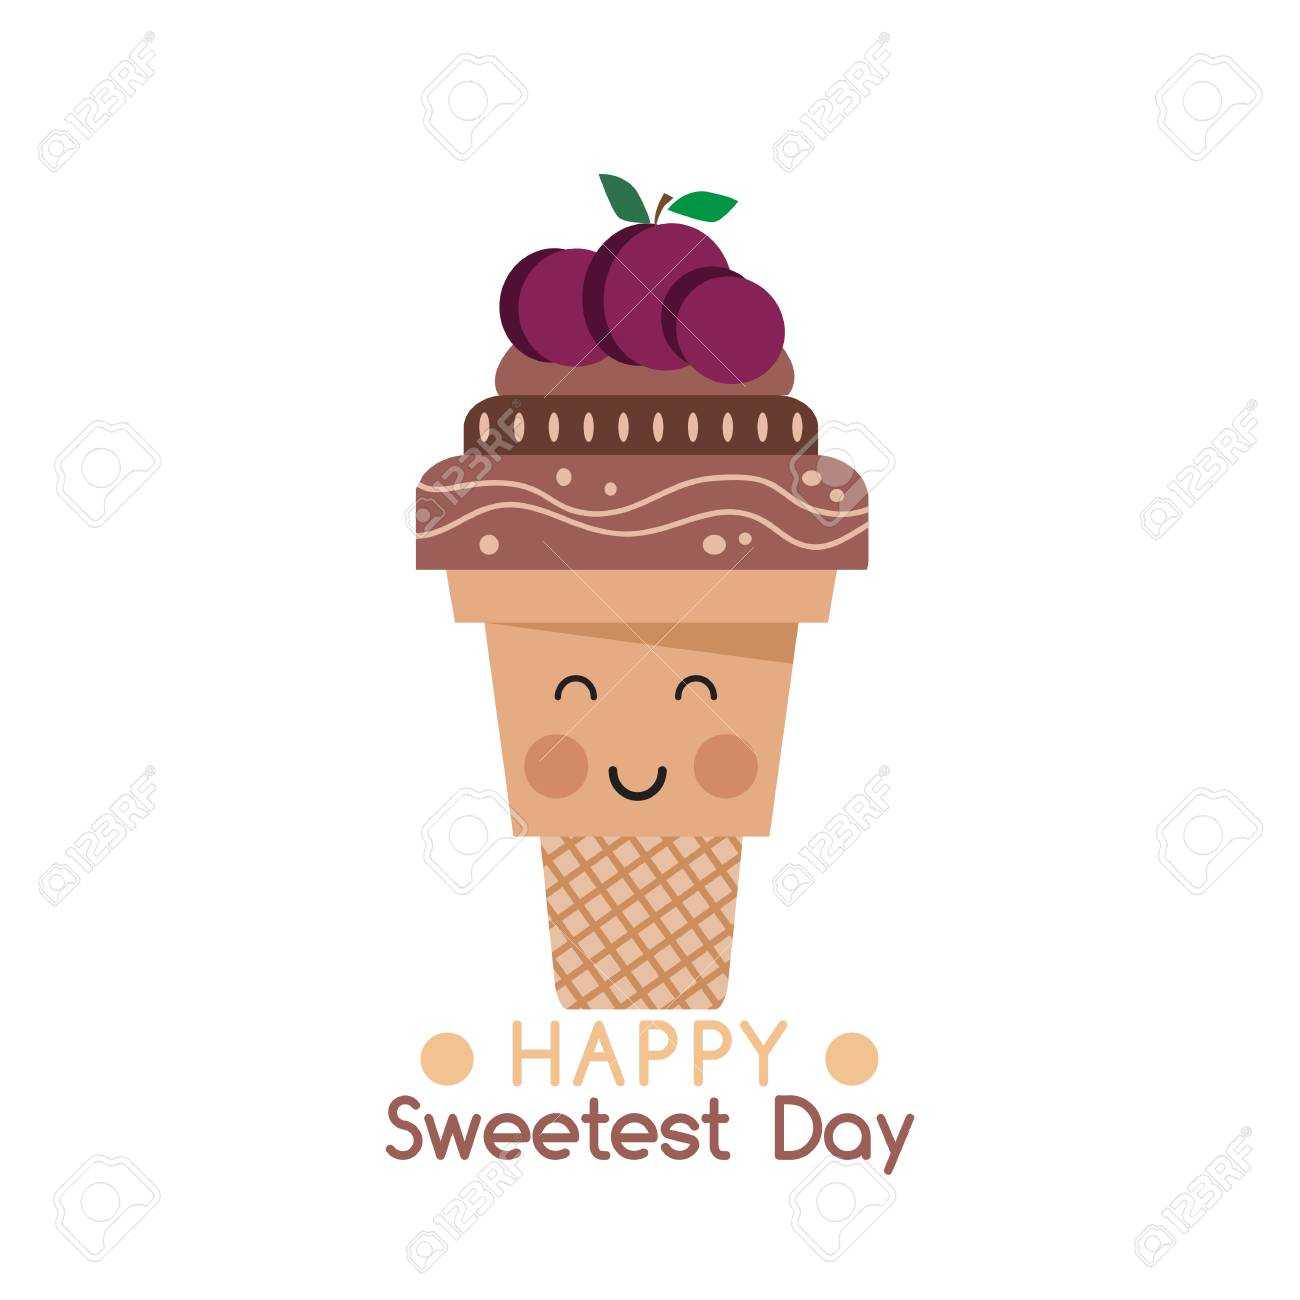 Happy Sweetest Day Template Poster Card Beautiful Chocolate